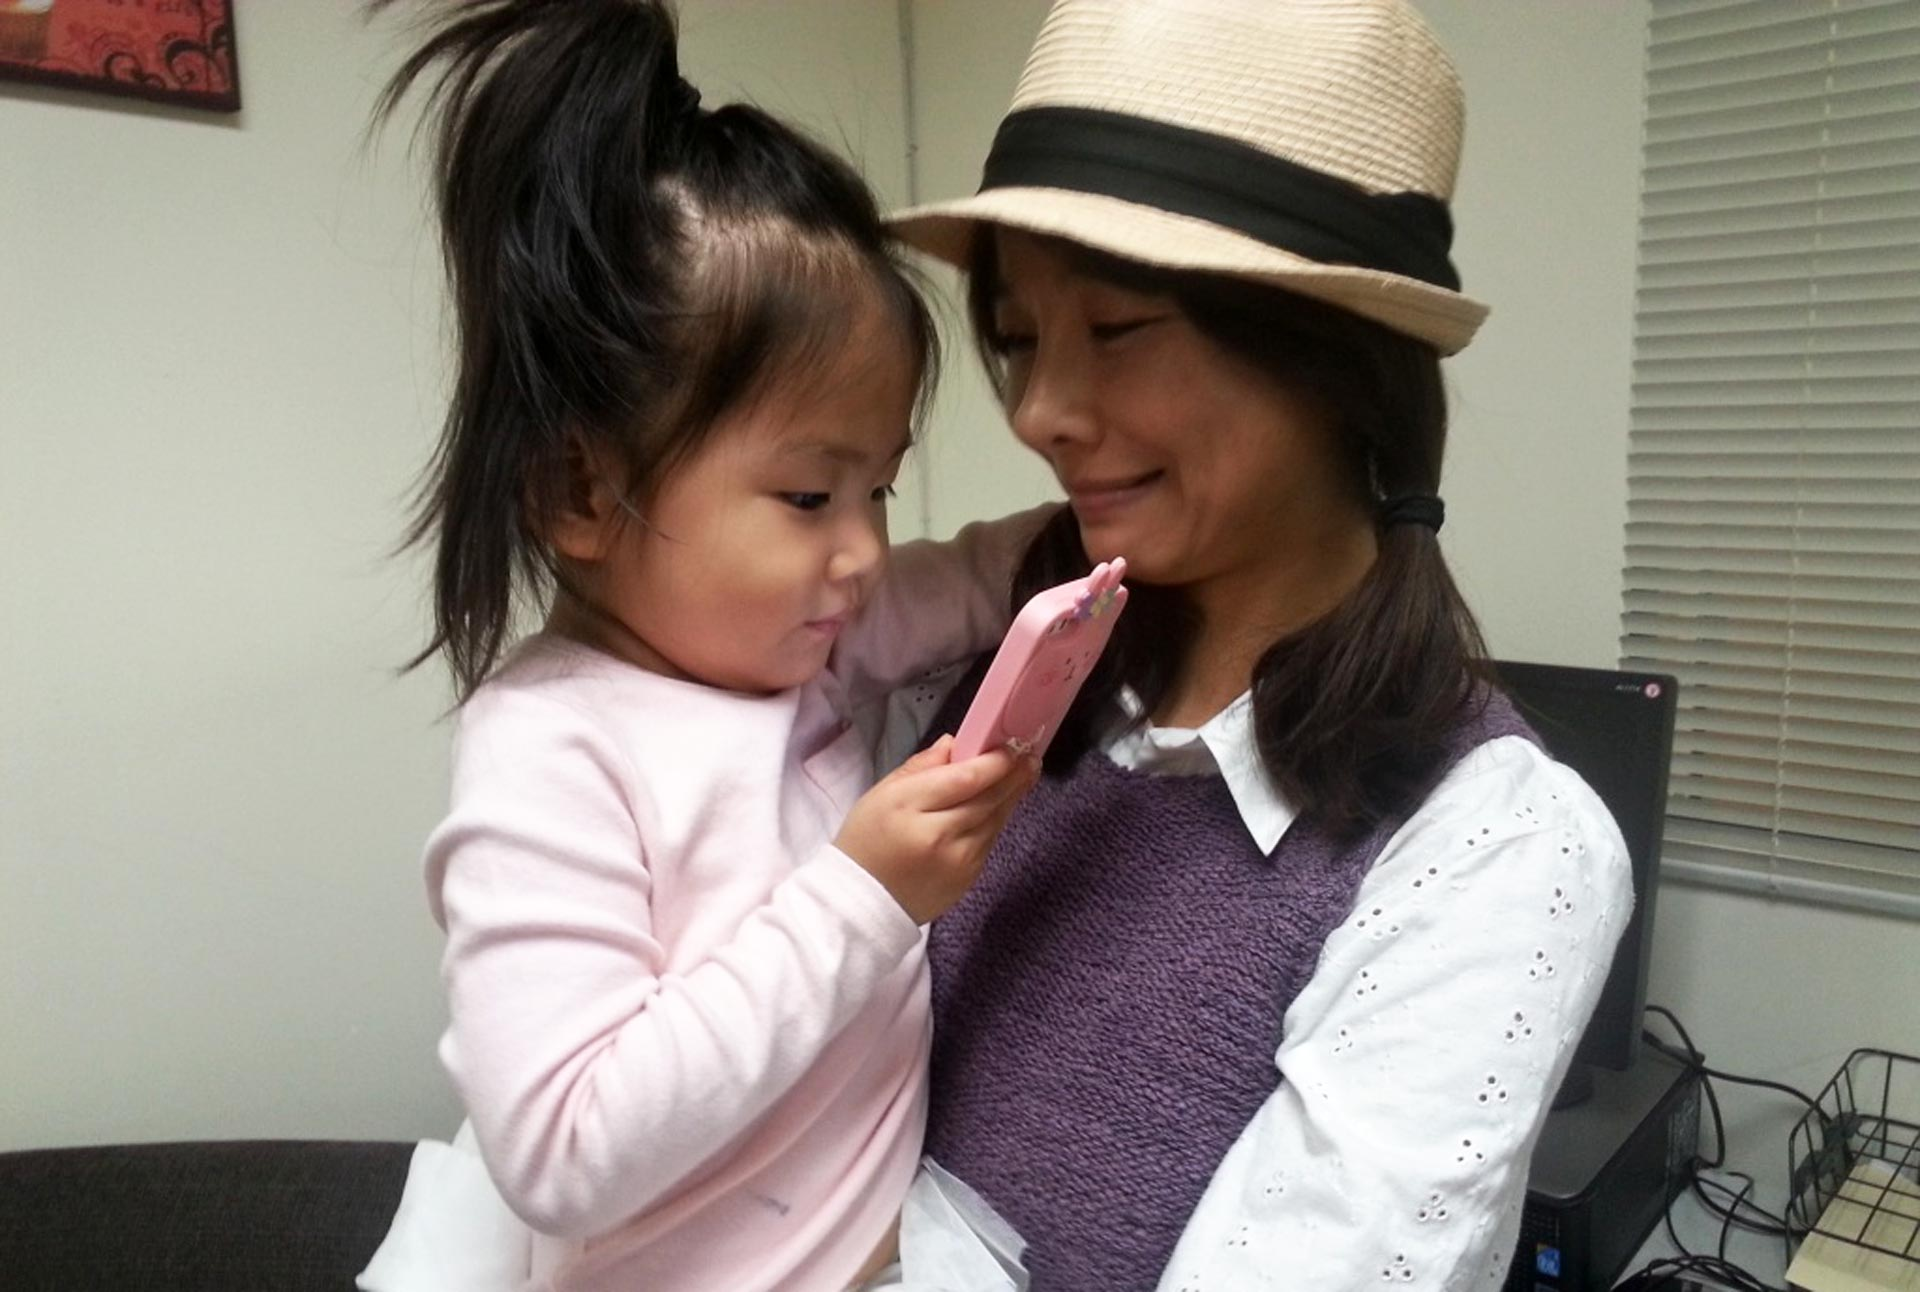 Ahyun and her three-year-old daughter, Joanna, watch anime while visiting the offices of Korean American Family Services. Ahyun, 31, is a survivor of domestic violence and receives counseling at the agency.